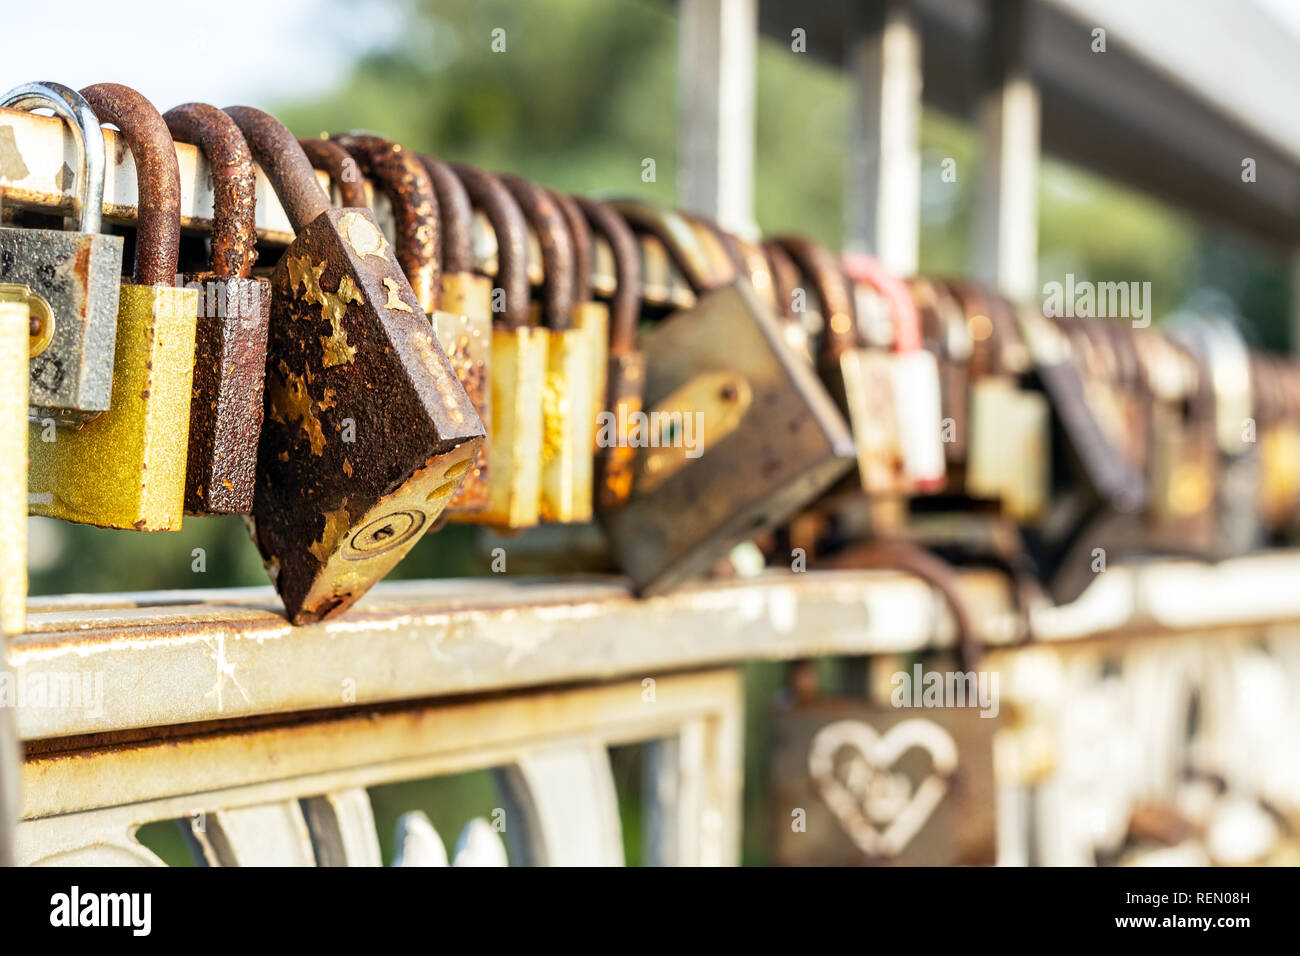 Many old rusty metal locks closed on fence of bridge over river